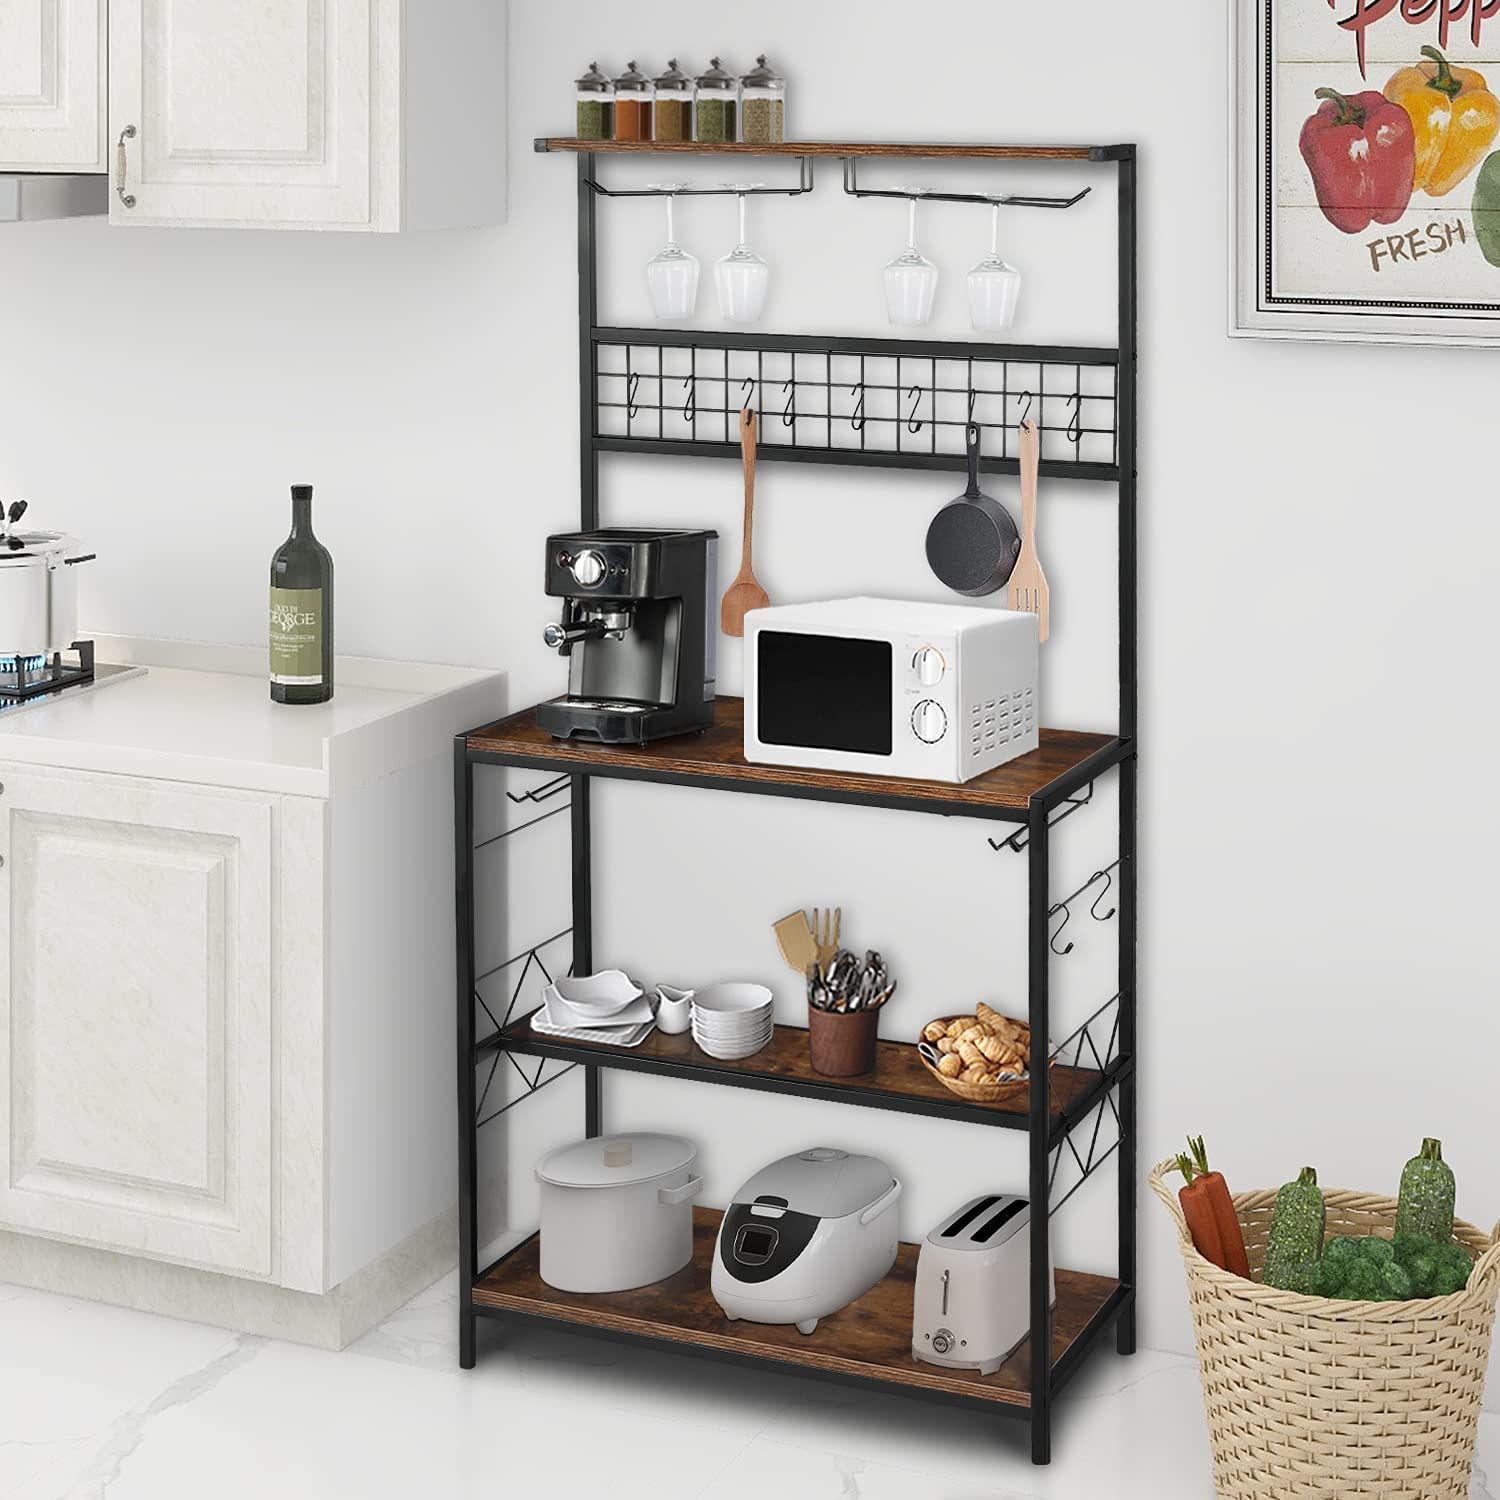 Vikiullf Kitchen Baker's Rack - Microwave Stand Sta Coffee Special price for a limited Max 42% OFF time Oven